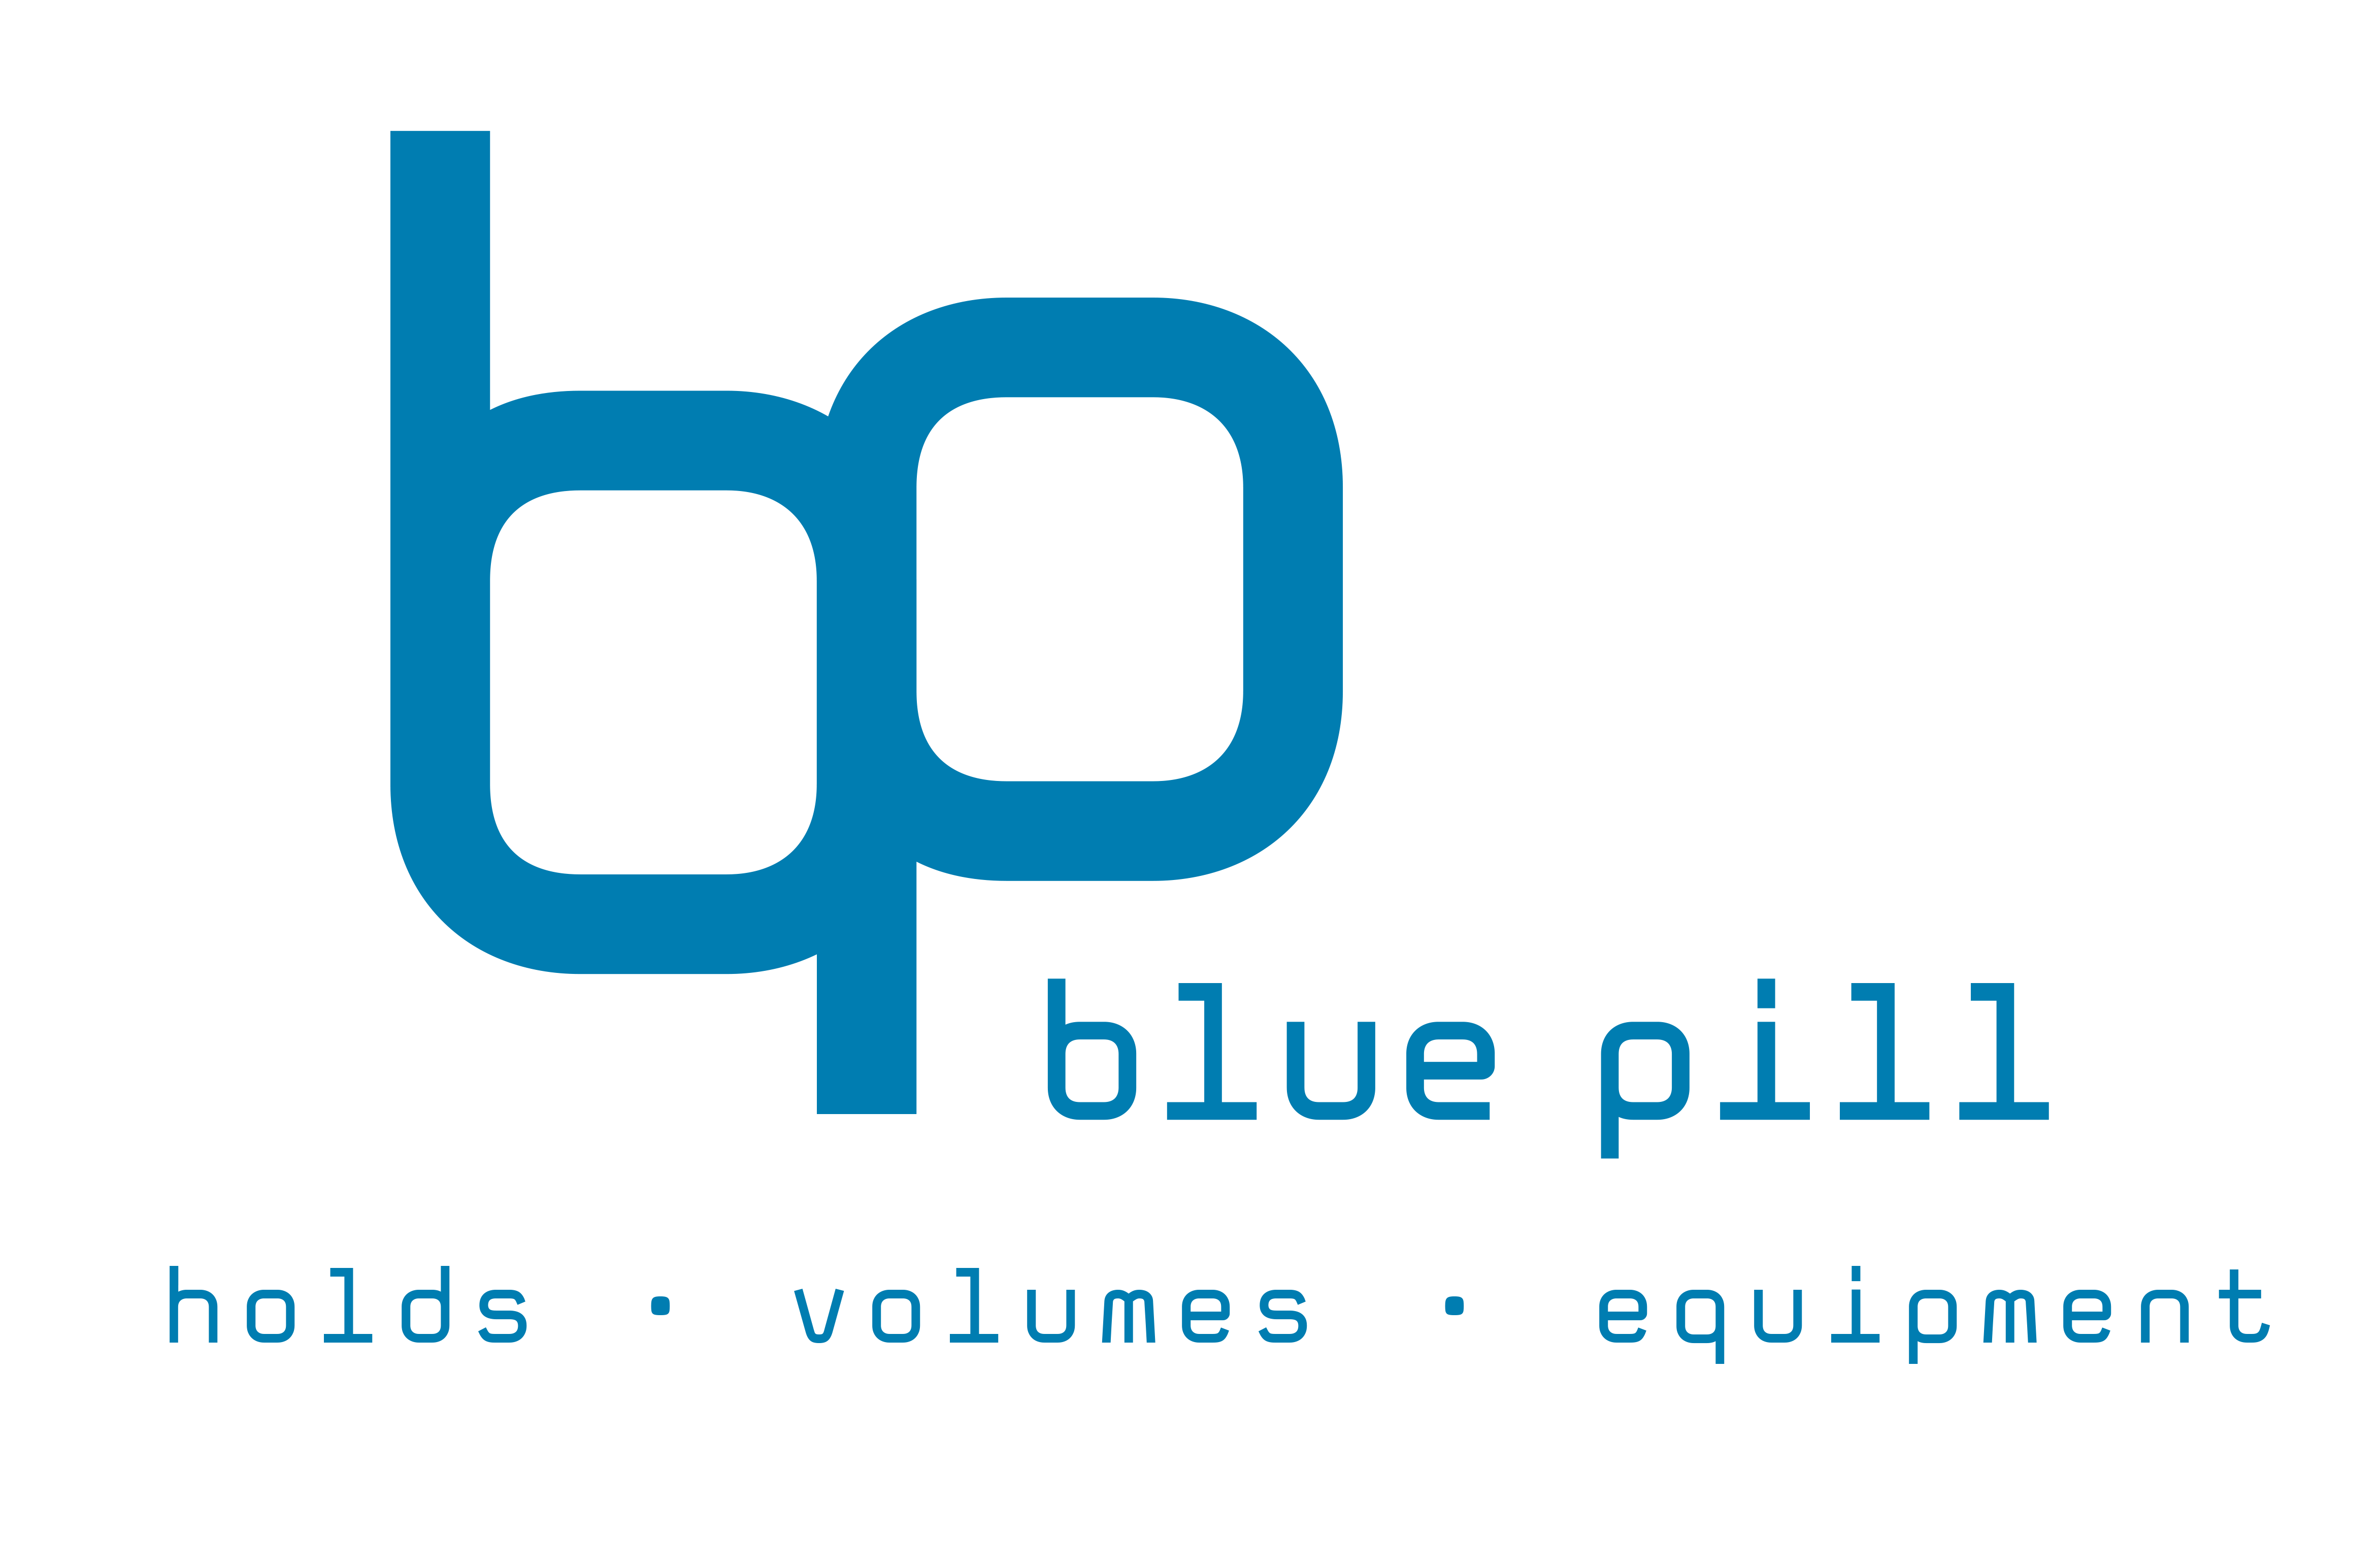 Bluepill – climbing holds and volumes - Blue Pill - Holds, Volumes